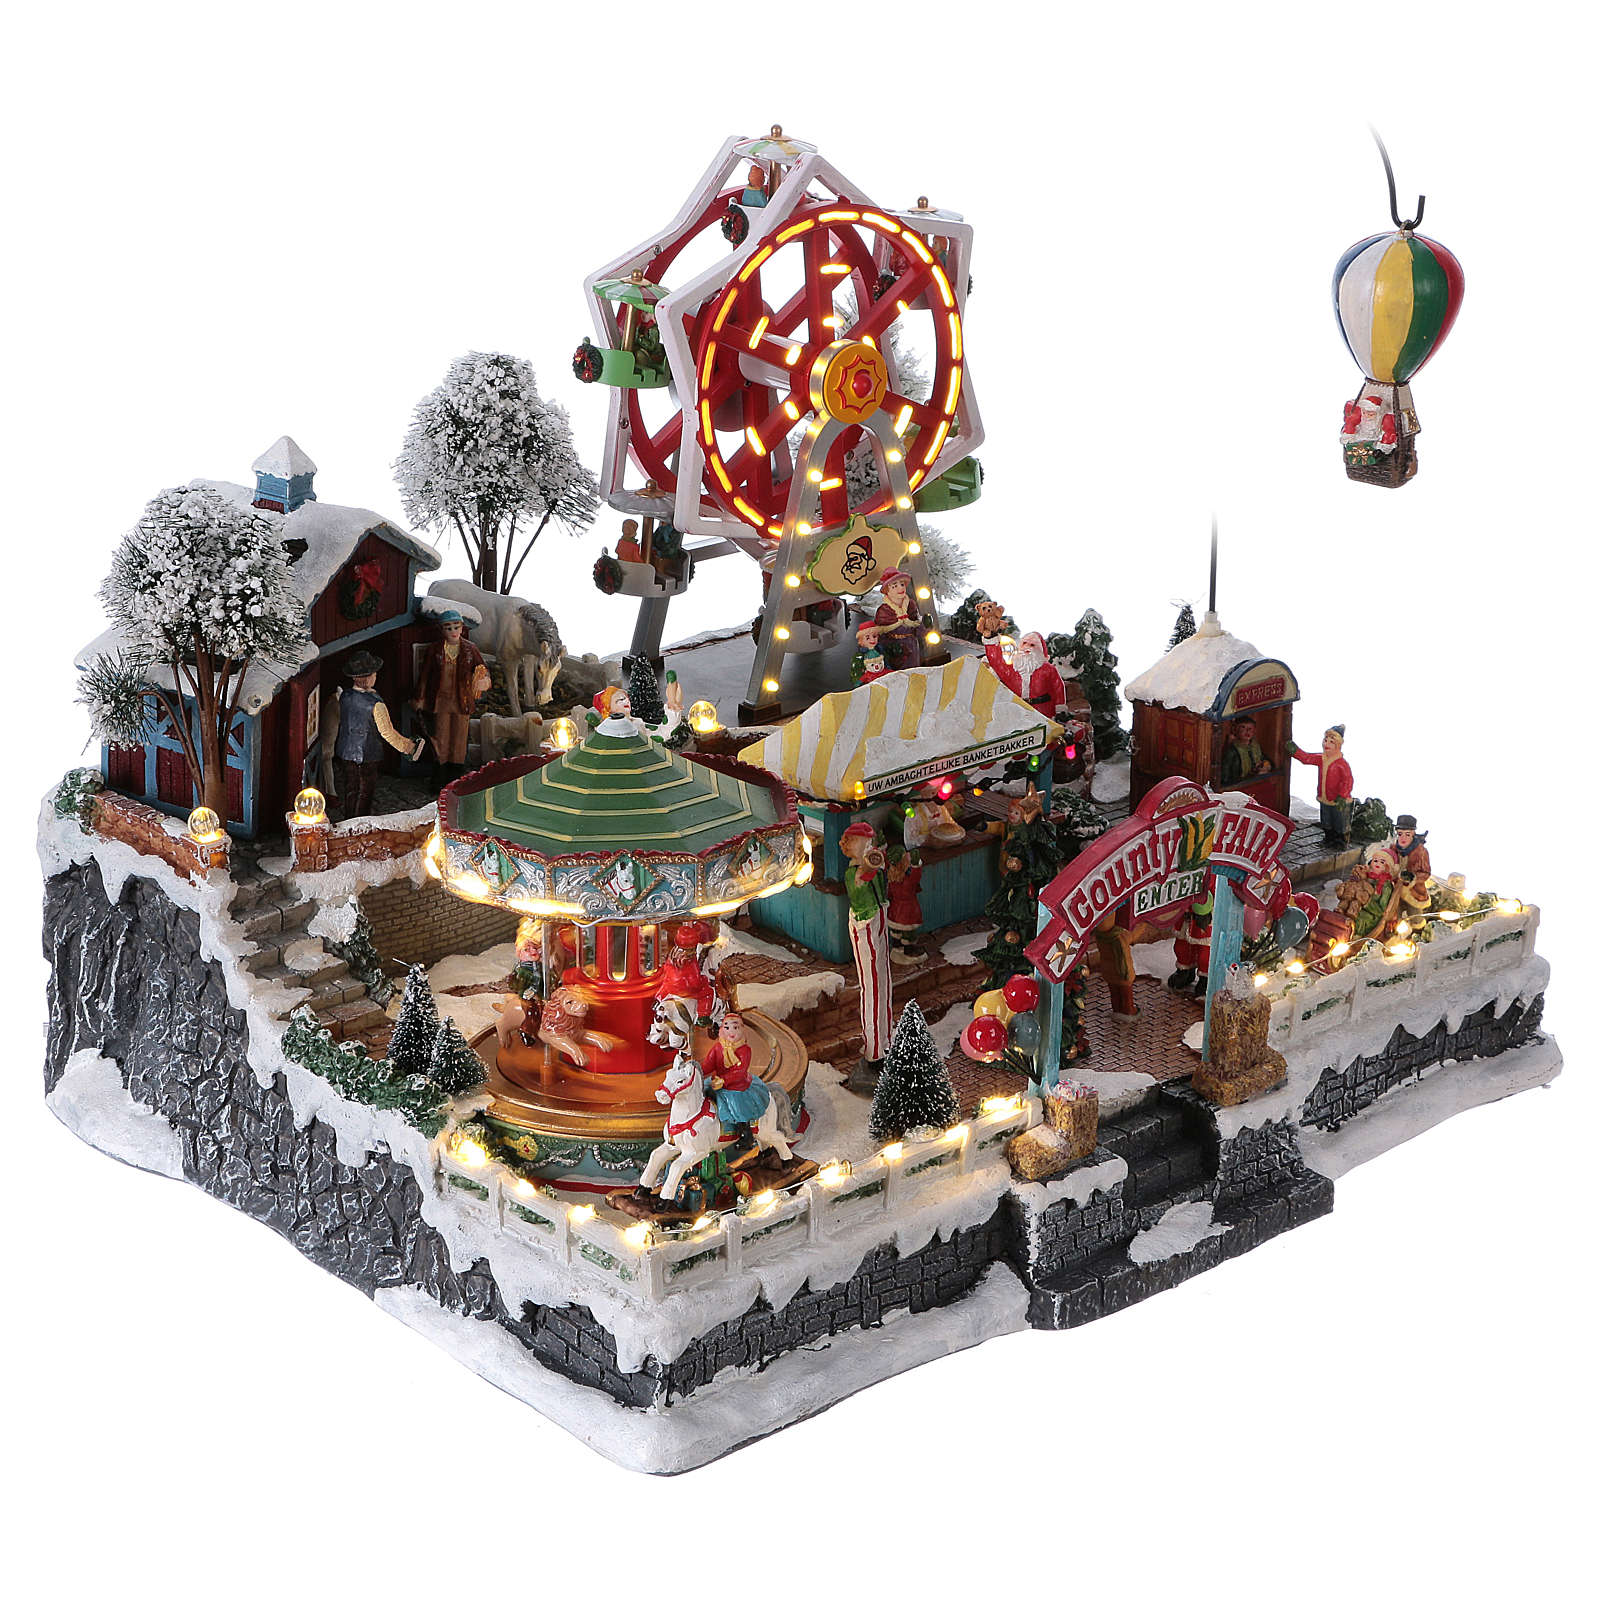 Christmas village 30x45x35 cm with moving fun fair, lights and music 3